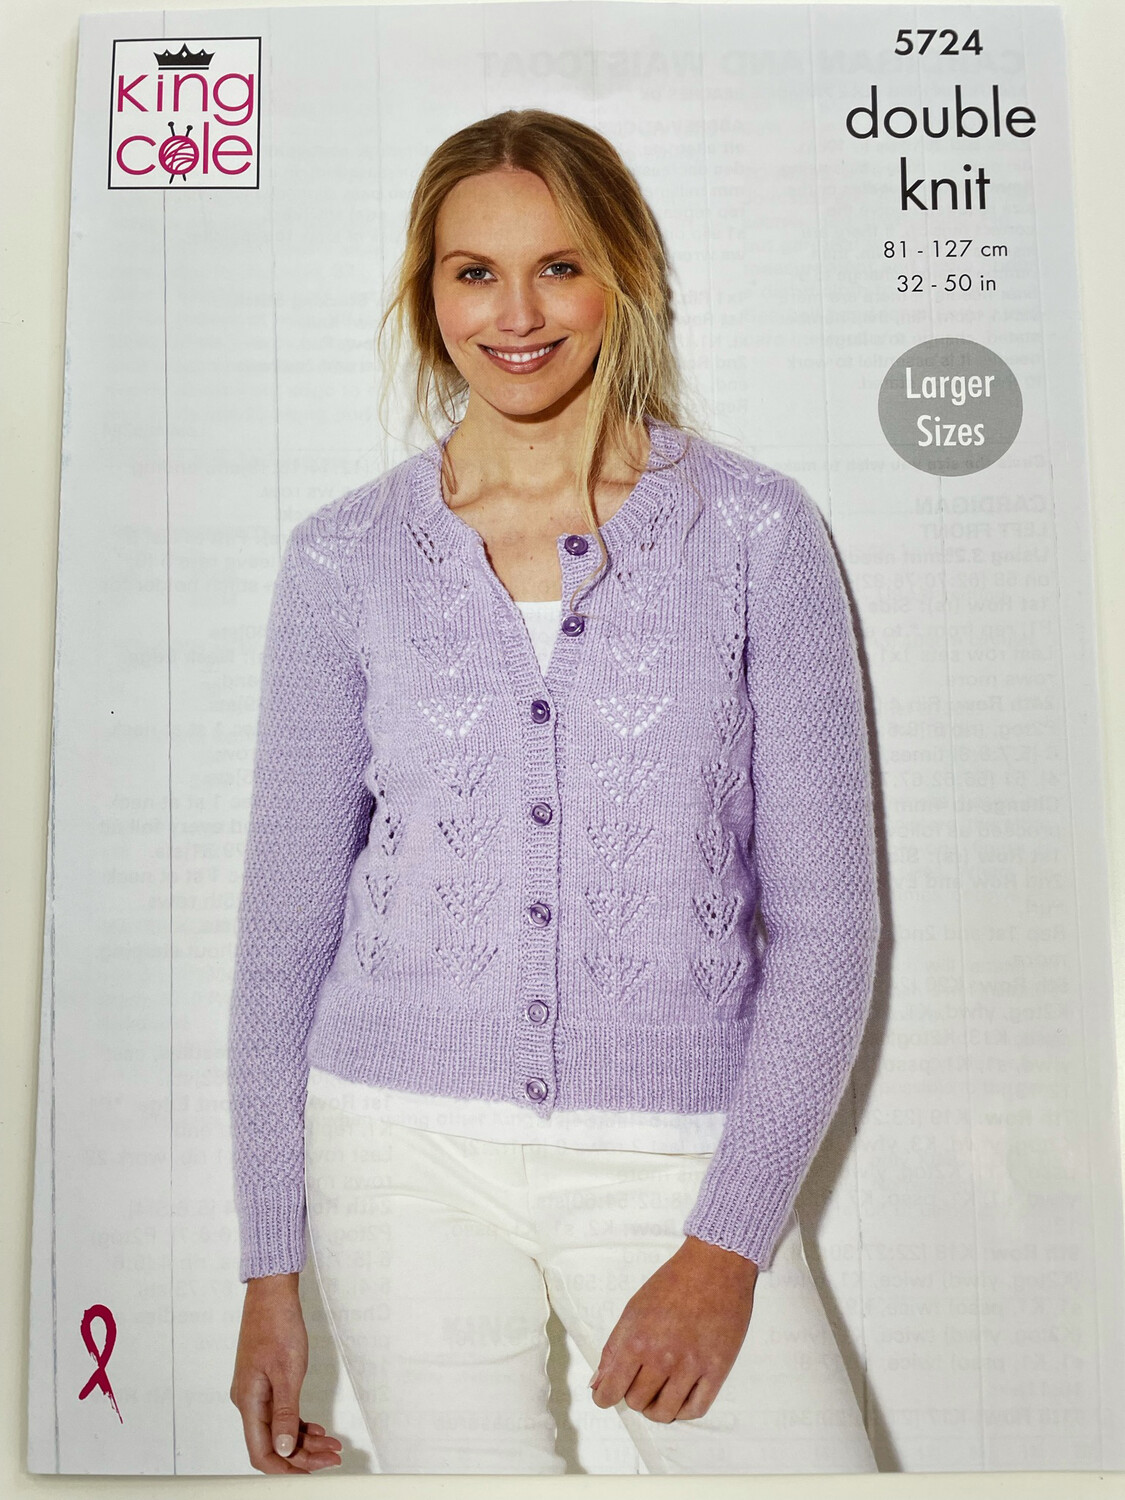 King Cole Cardigan and Waistcoat Double Knit - Women's Pattern 5724